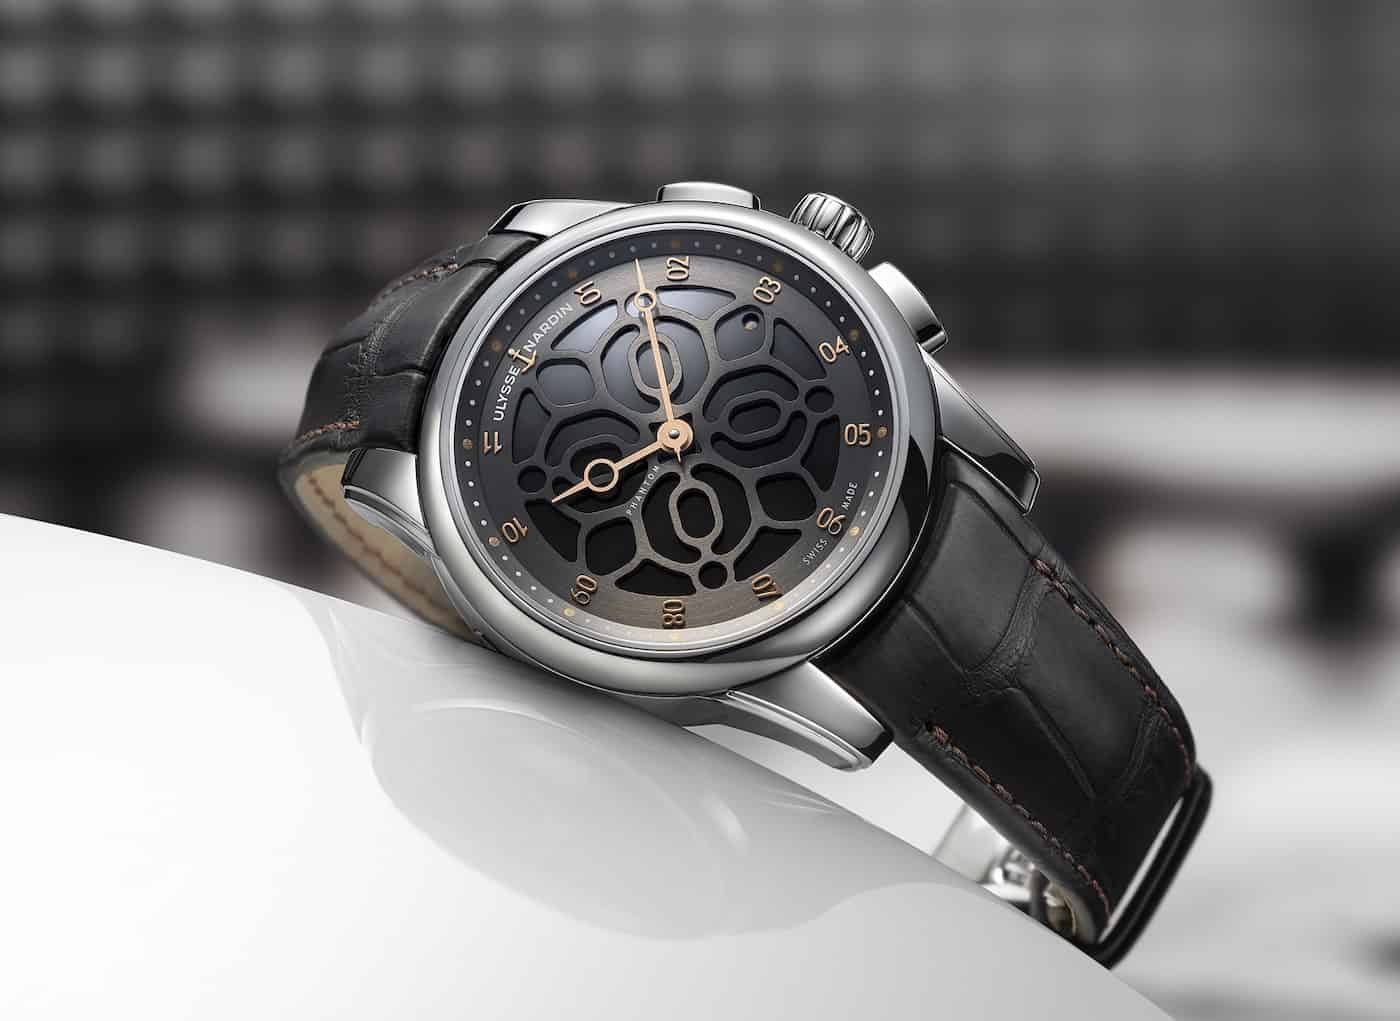 Ulysse Nardin Hourstriker Phantom Limited Edition Watch Devialet 1